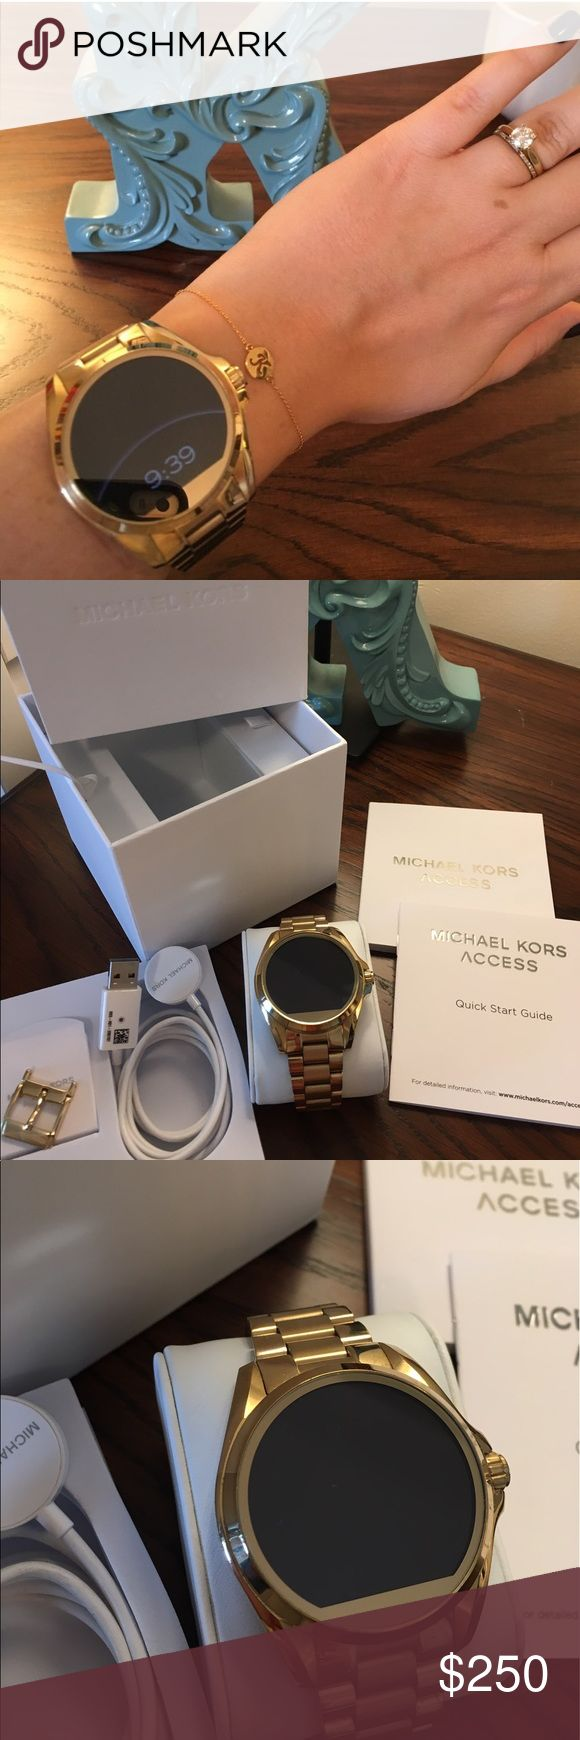 Michael Kors Access Smartwatch Gold Bradshaw I decided to get an Apple Watch instead. This watch is in excellent used condition. I used it for a few months and got tons and tons of compliments. Works best with Android phones but will work with iOS also. Way more stylish than your average smartwatch!! Includes charger, box, extra clasp, all links, and manuals. Michael Kors Accessories Watches